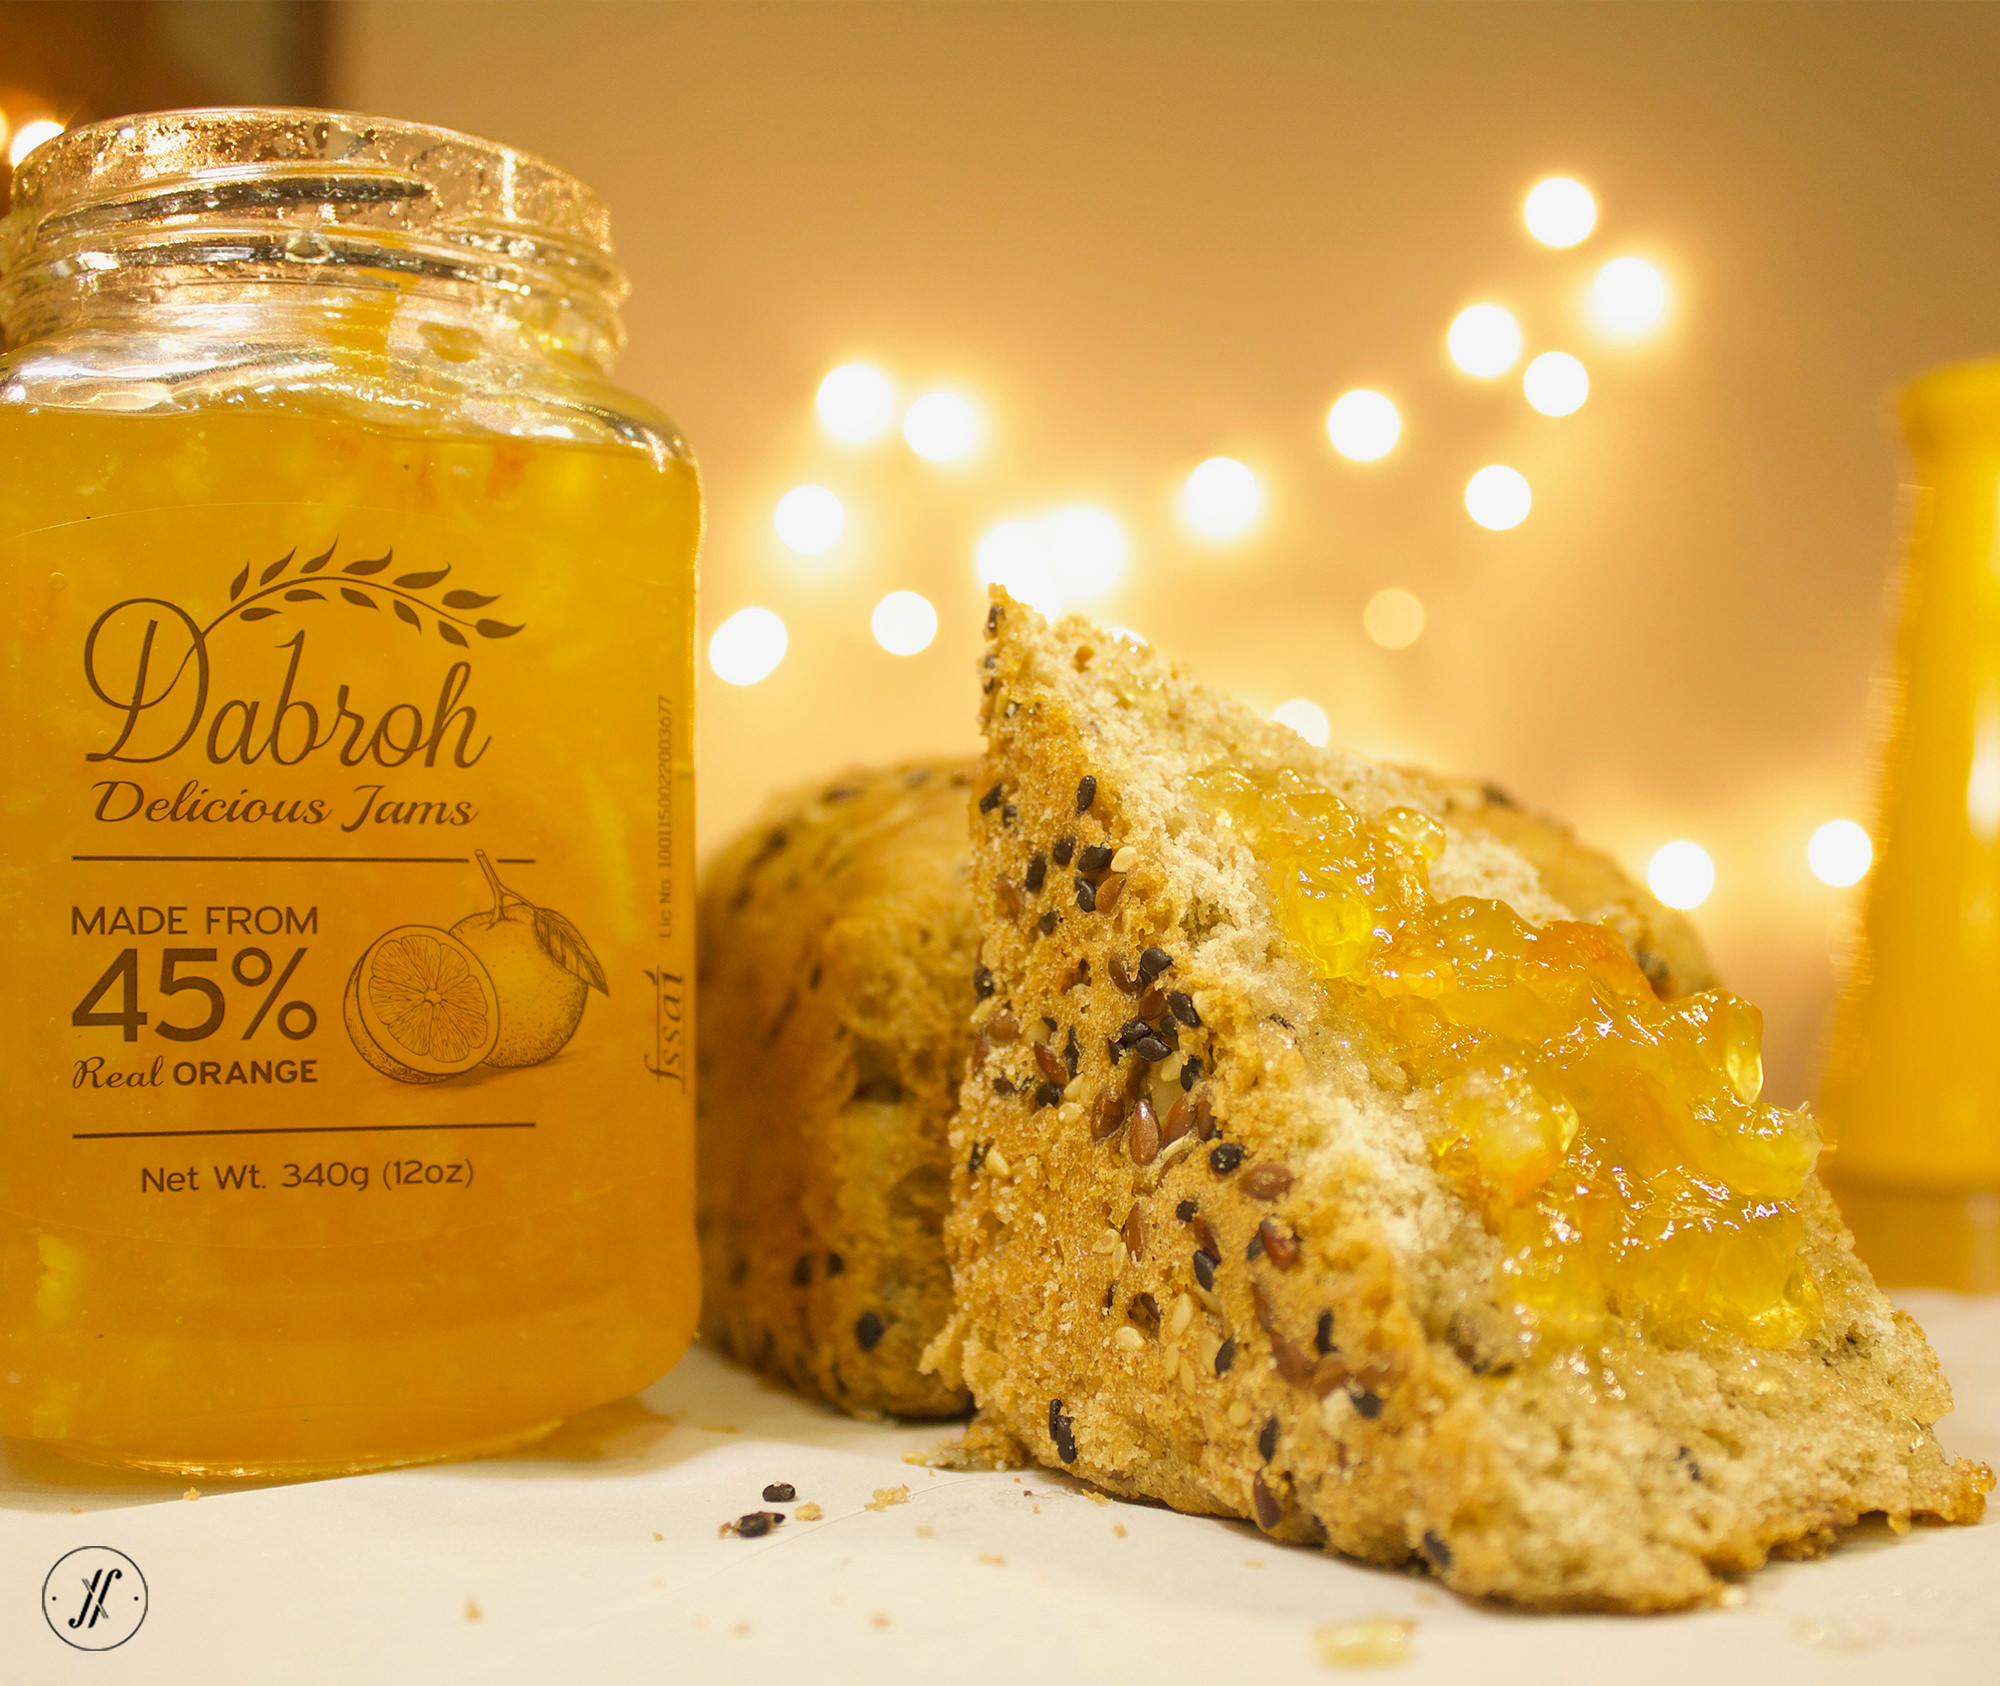 Dabroh-packaging-design-yellow-fishes-branding-agency-Consultancy-design-agency-mumbai-jams-best-packaging-design-logo-behind the scenes-bread-jam